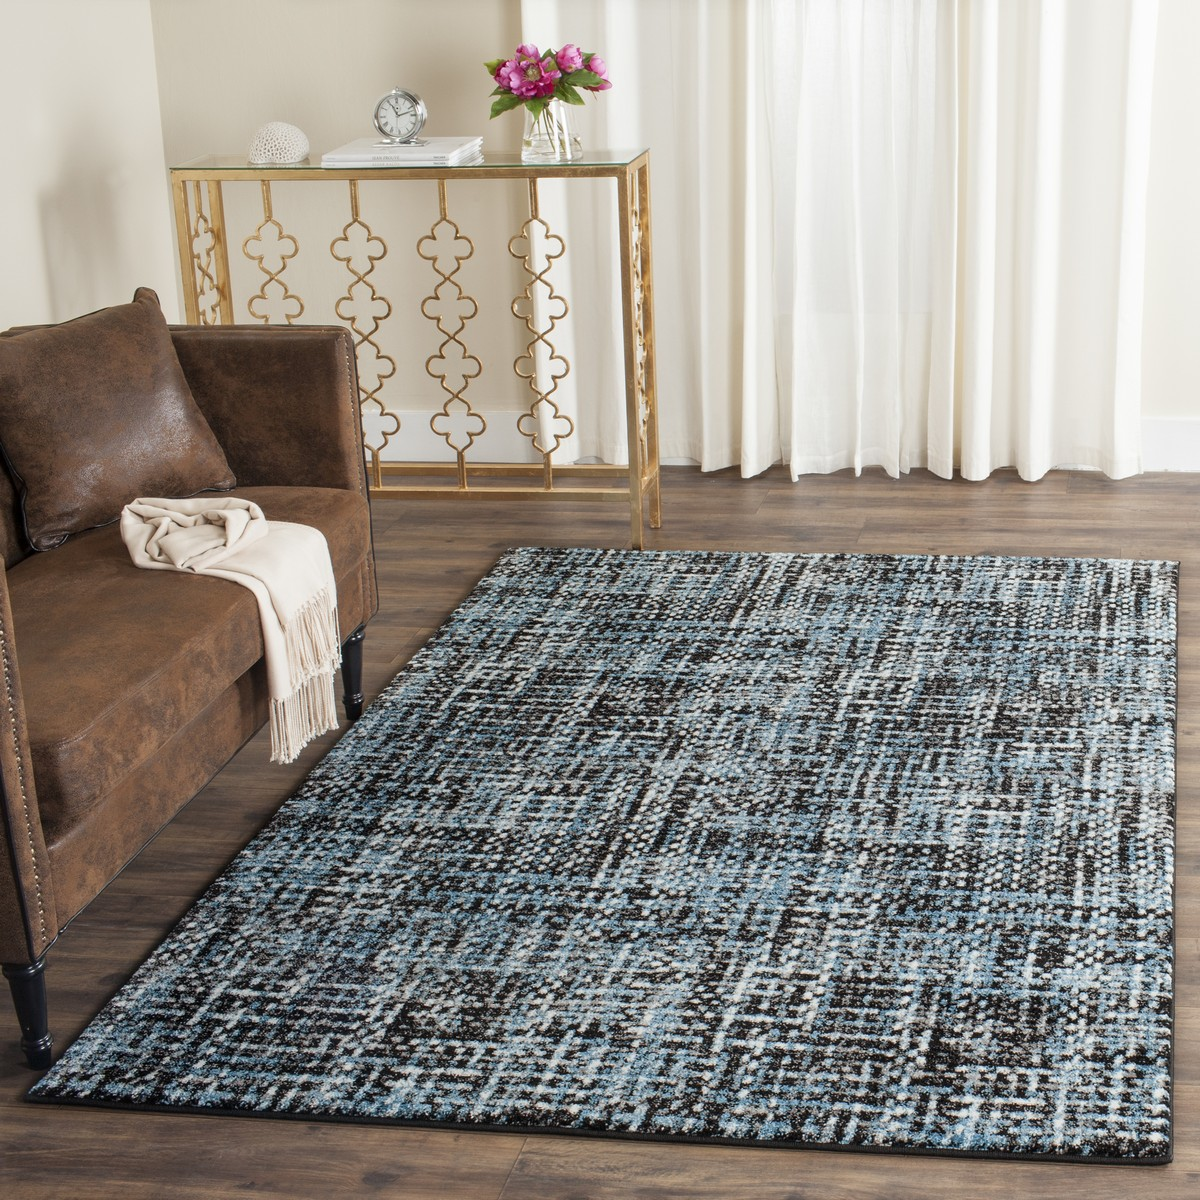 Rug Prl6941g Porcello Area Rugs By Safavieh